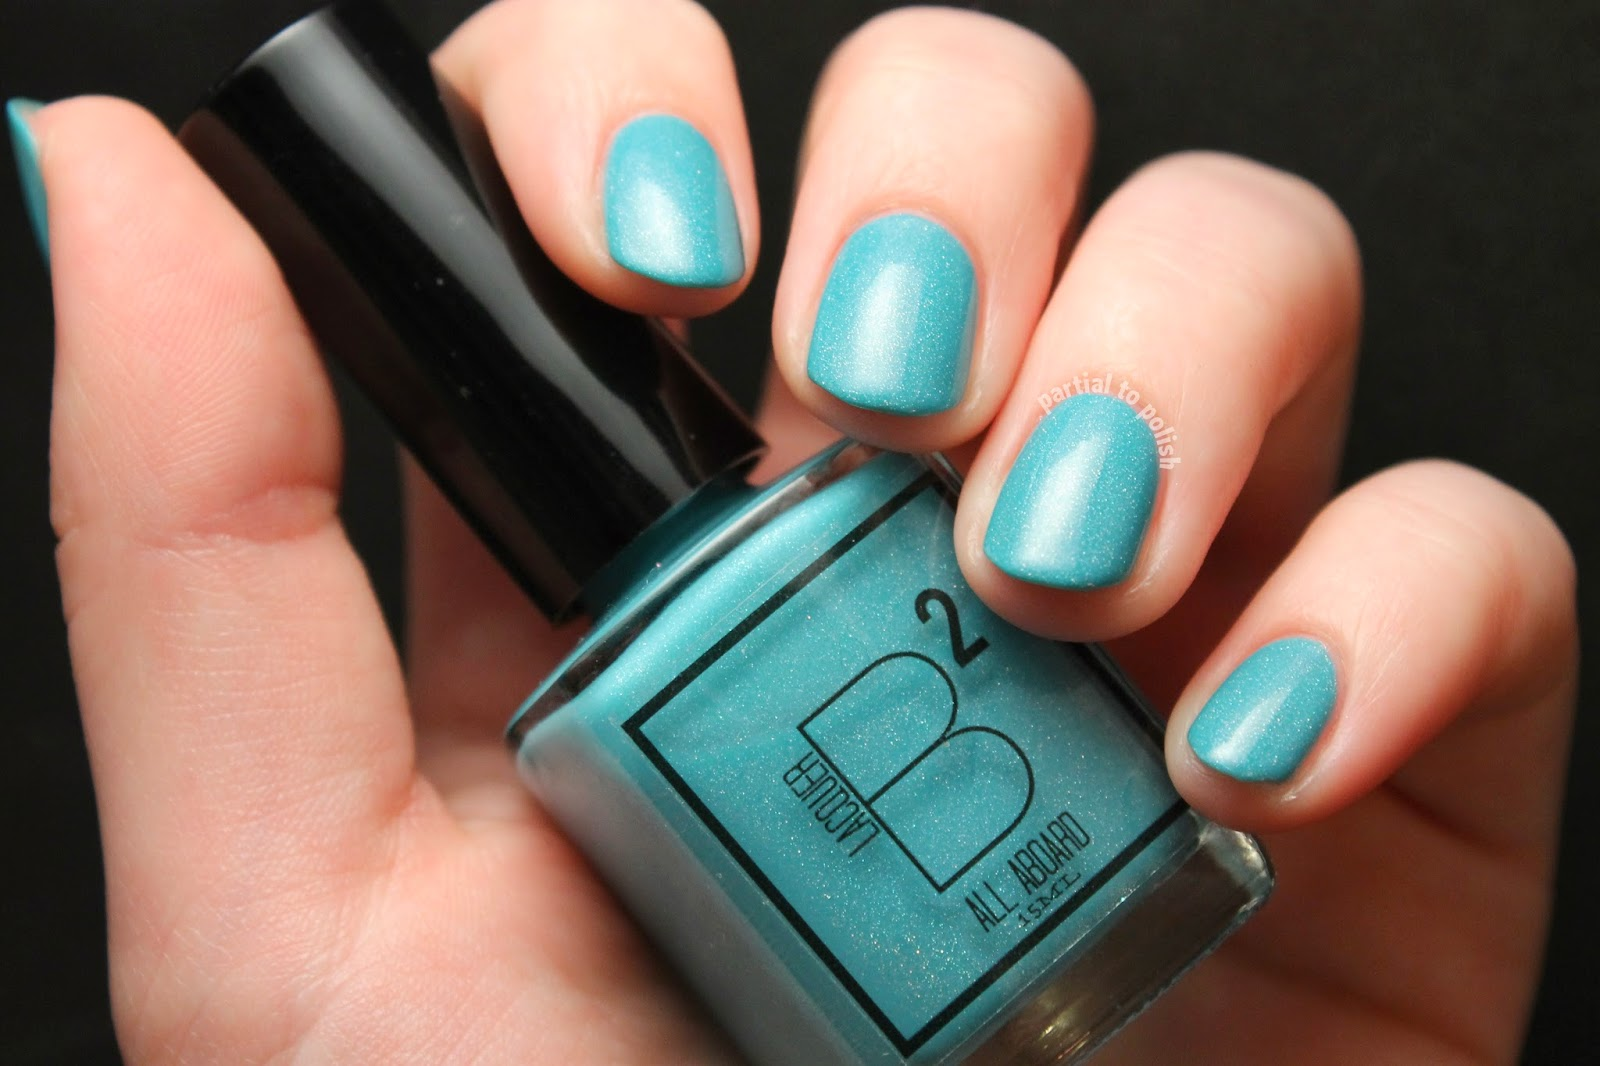 B Squared Lacquer All Aboard